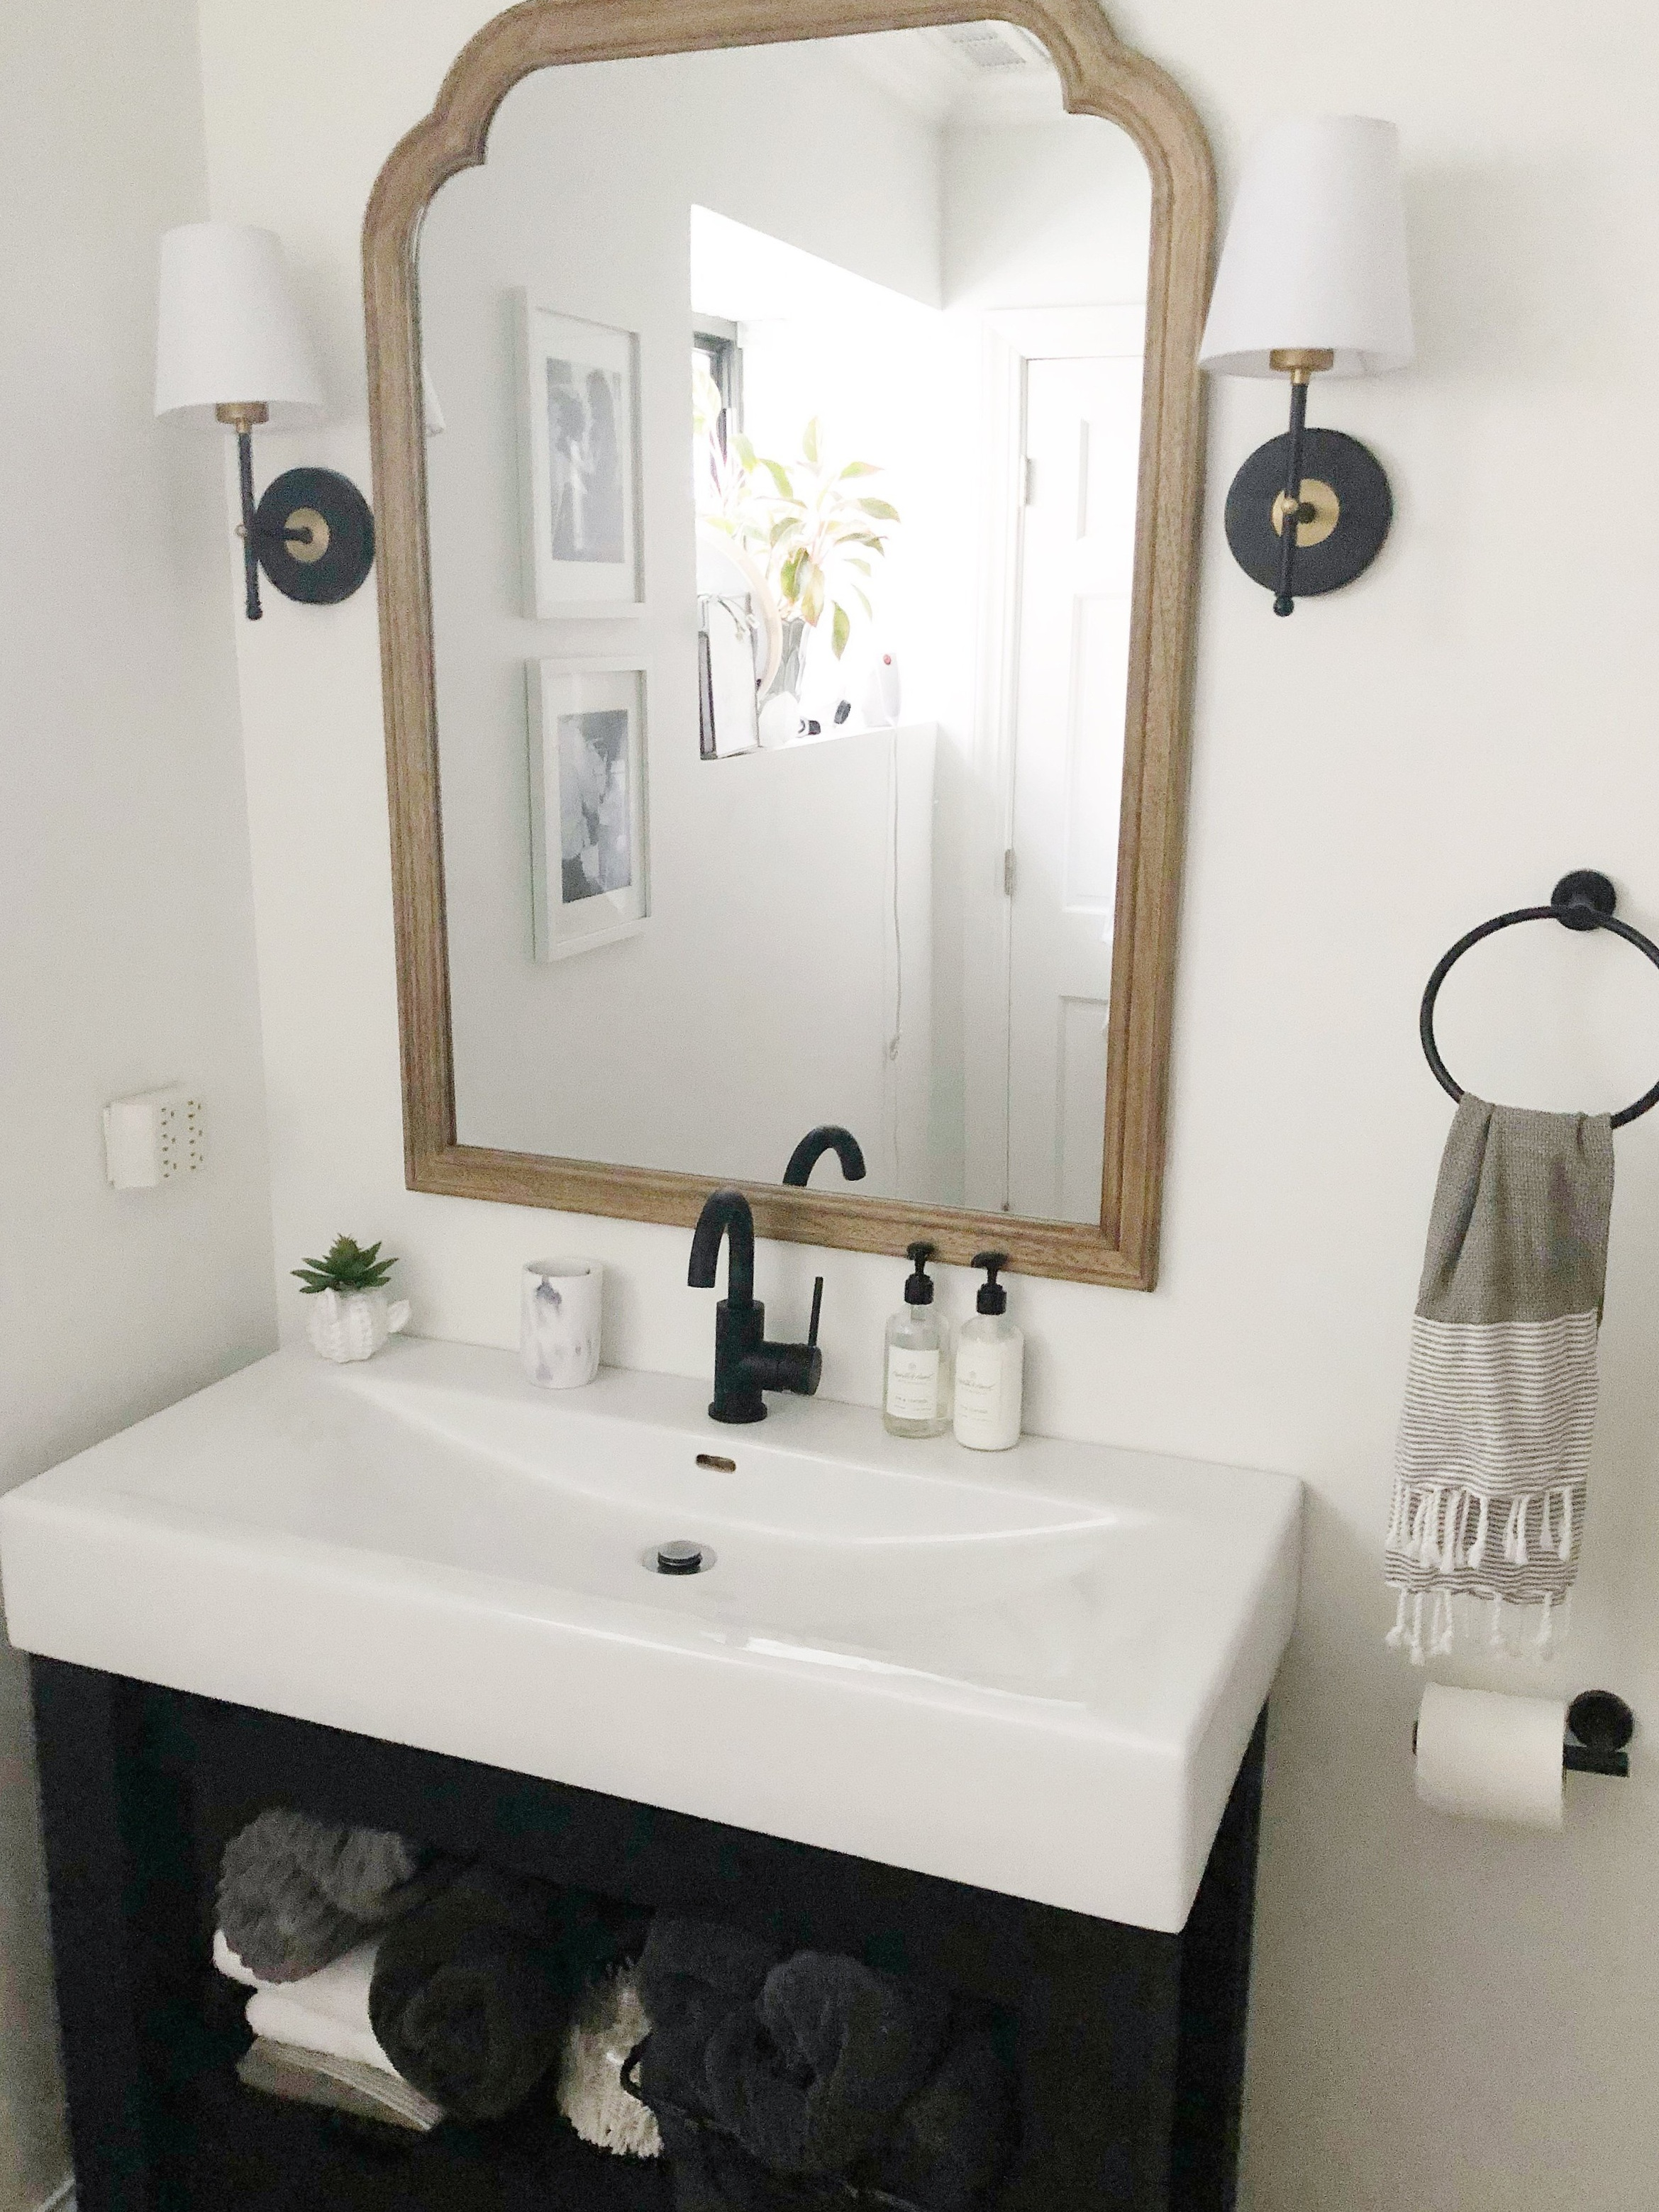 I really love the mirror / sconce combination.